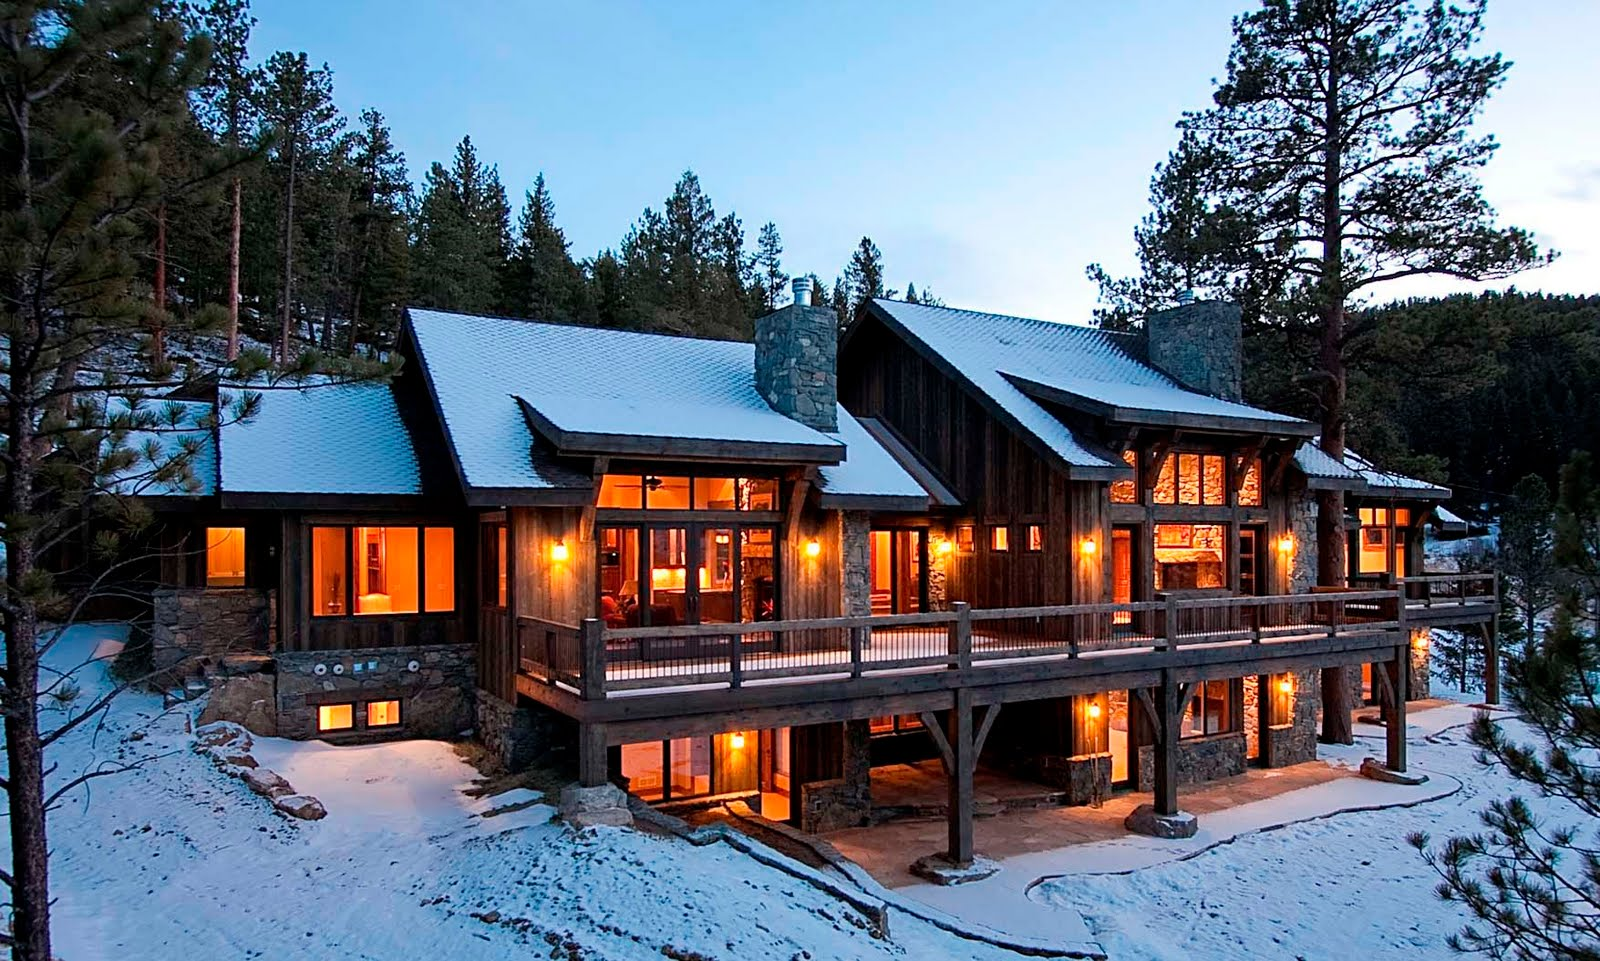 Tkp architects pc tkp design wins best in american living for The mountain house